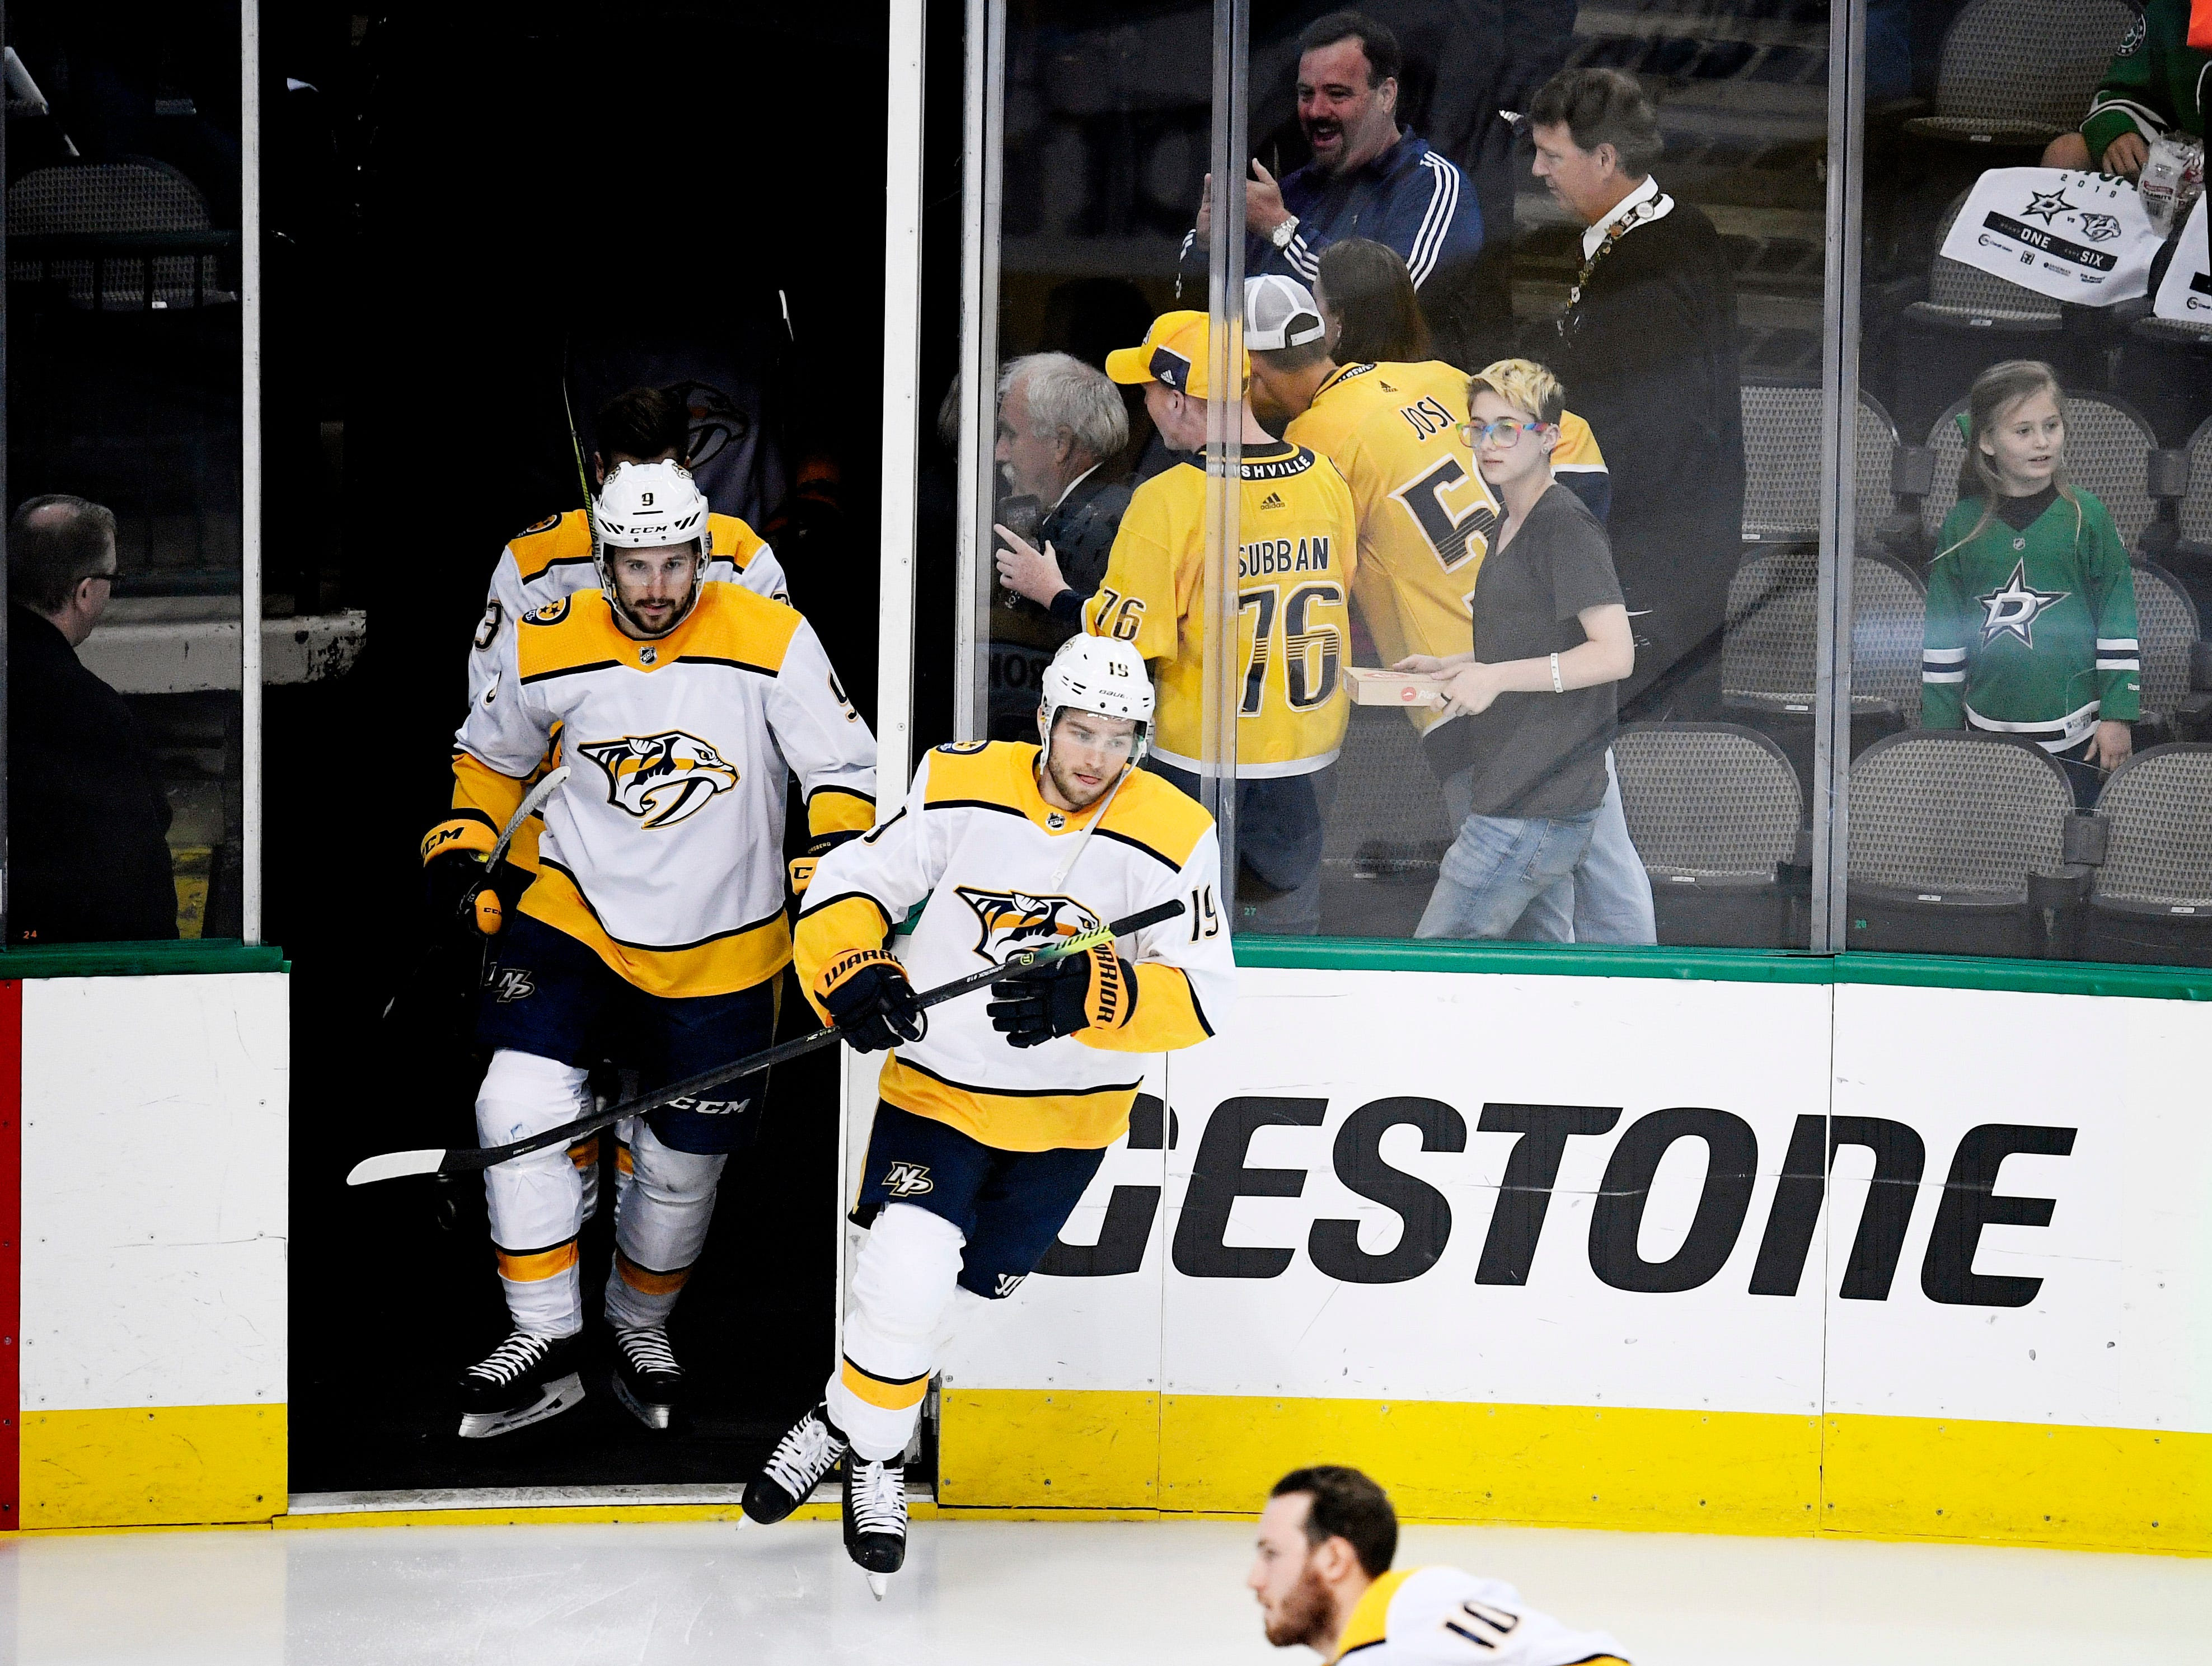 The Predators take the ice for warmups before the divisional semifinal game against the Stars at the American Airlines Center in Dallas, Texas, Monday, April 22, 2019.